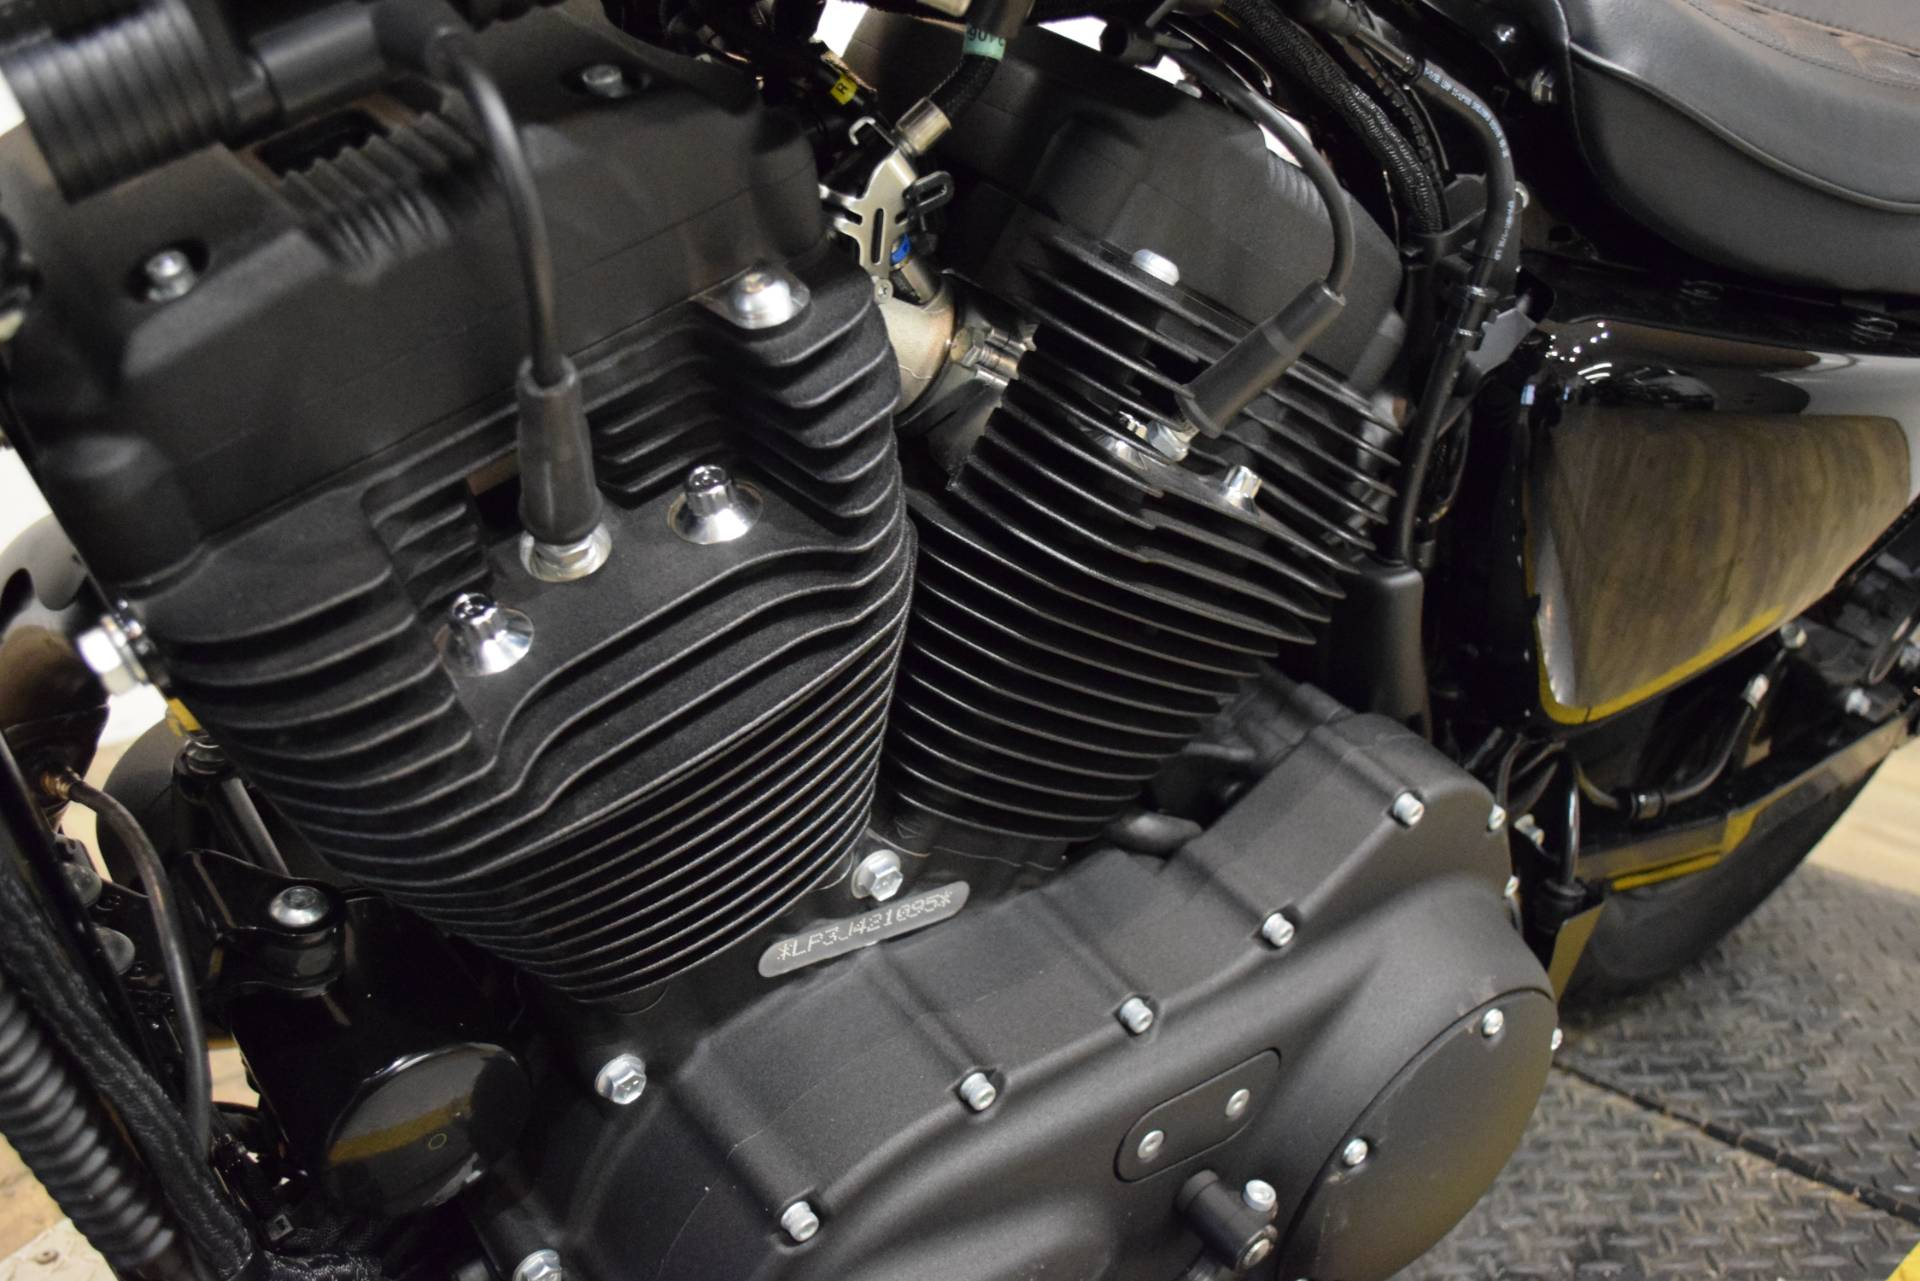 2018 Harley-Davidson Iron 1200™ in Wauconda, Illinois - Photo 19